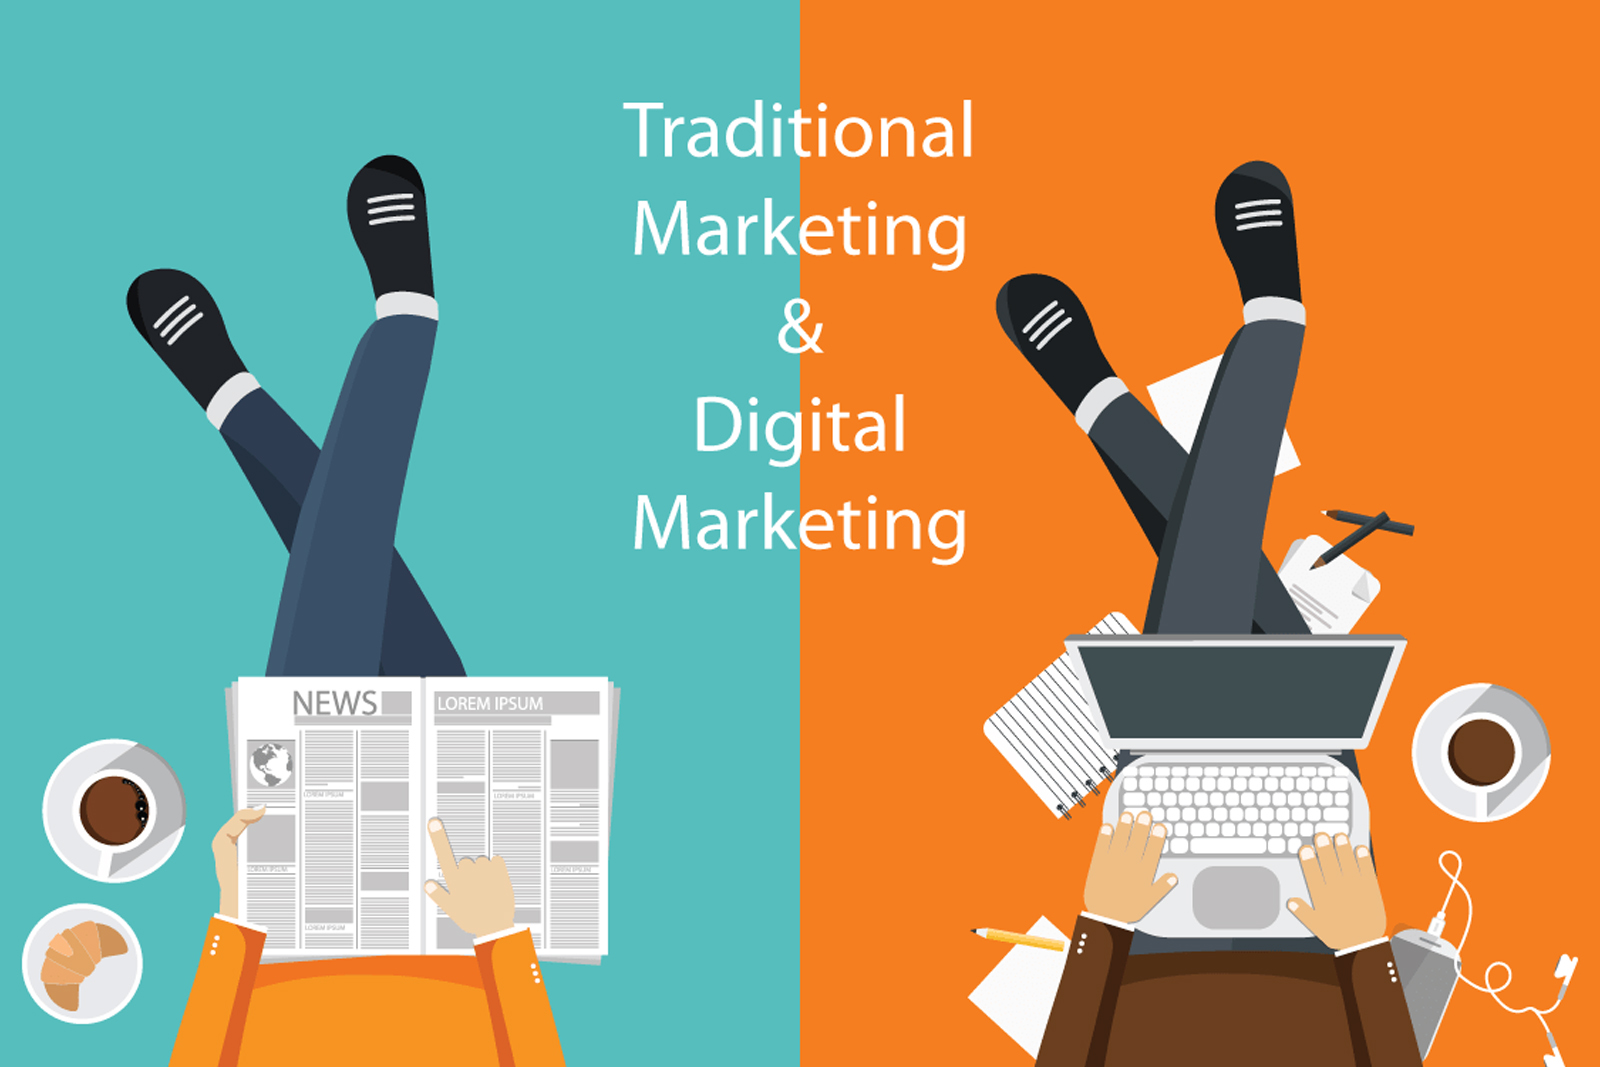 Keunggulan Digital Marketing vs Tradisional Marketing Keunggulan Digital Marketing vs Tradisional Marketing